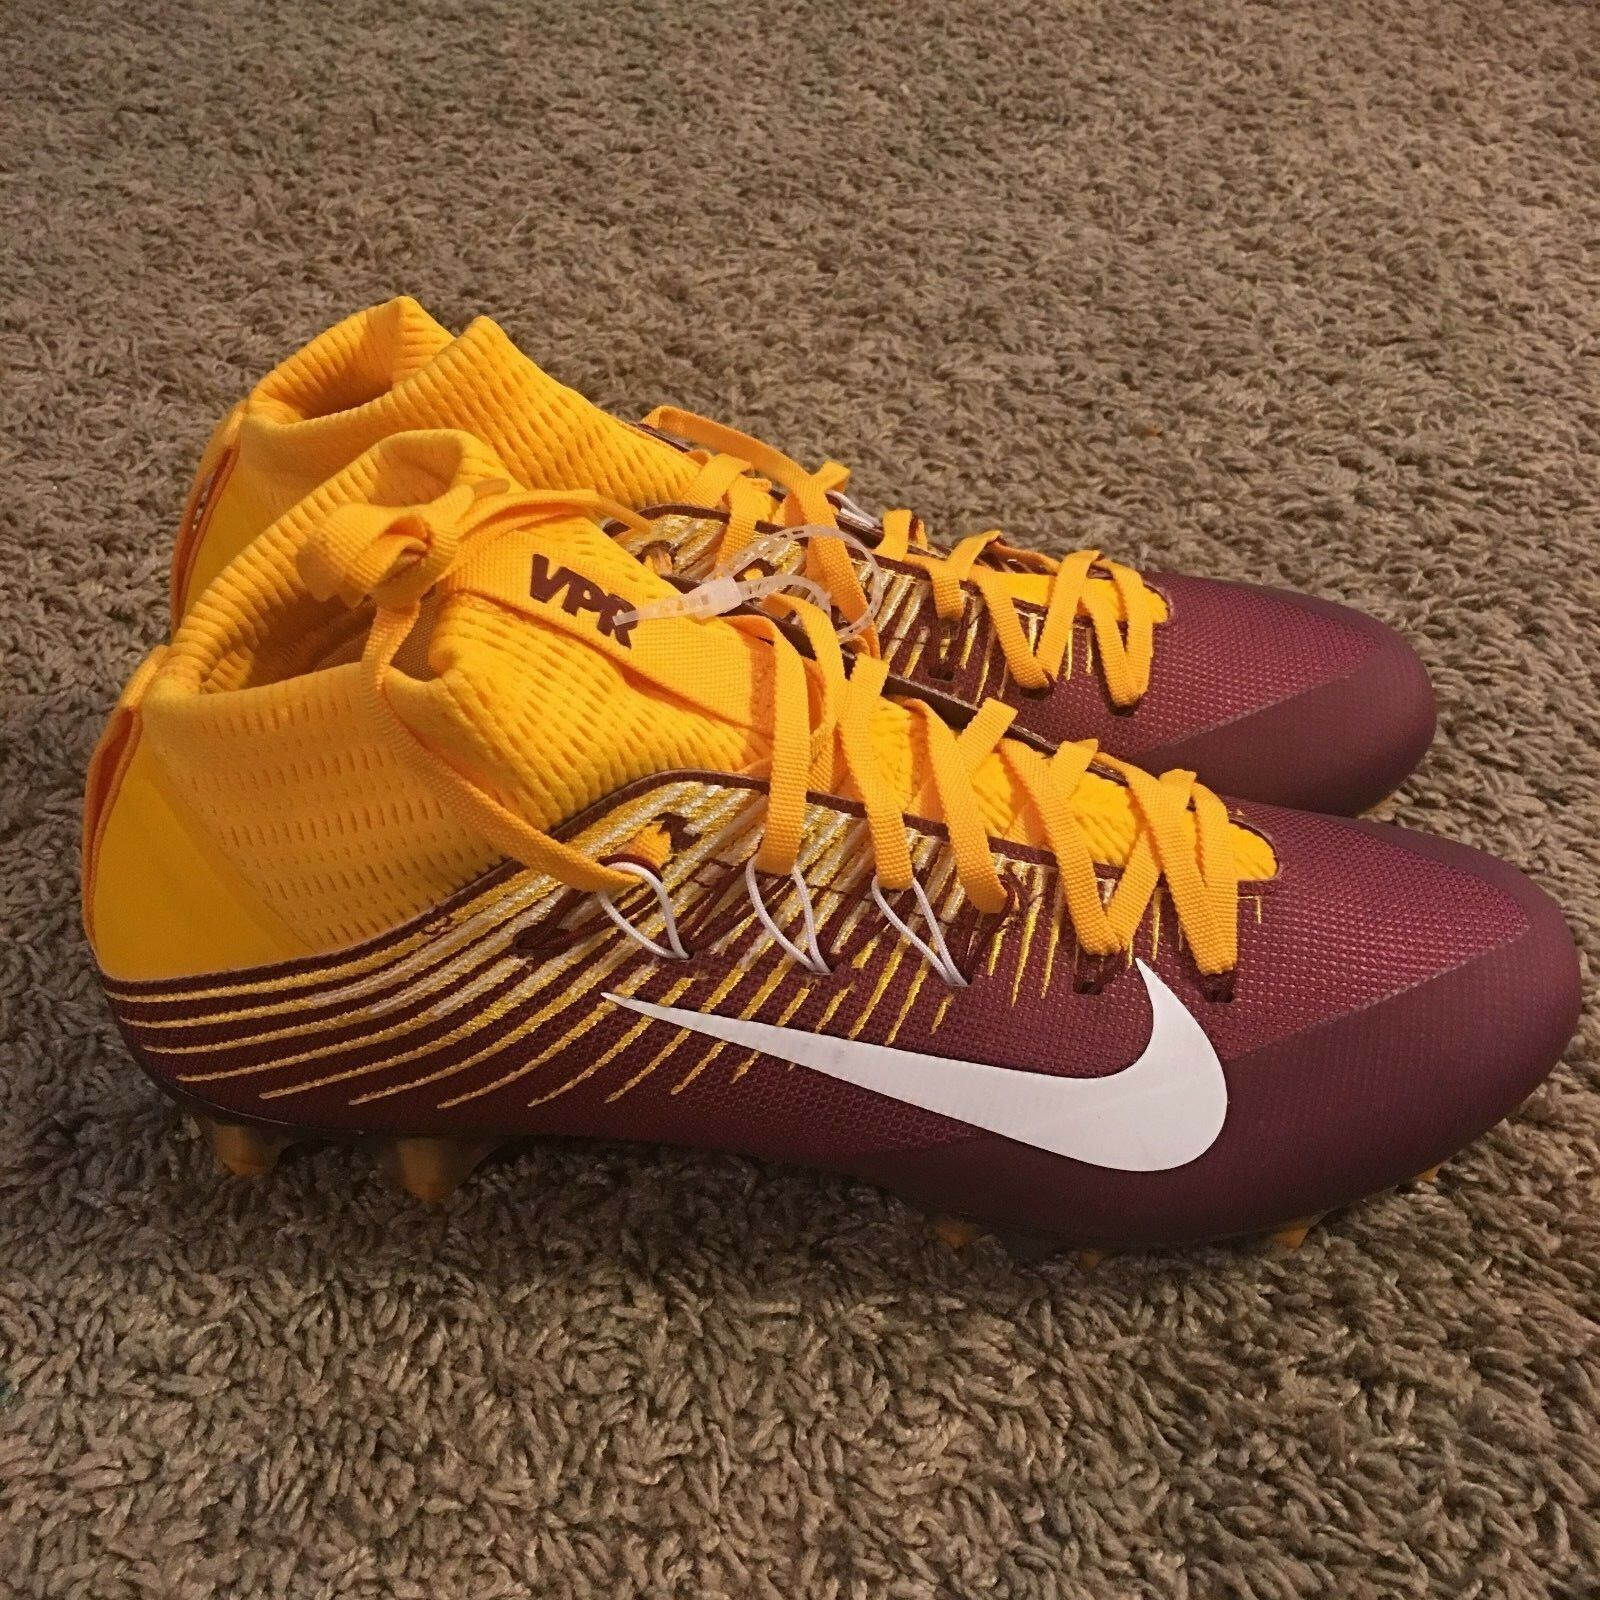 Nike Vapor Untouchable 2 Football Cleat 13 Maroon Red Redskins 835646 632